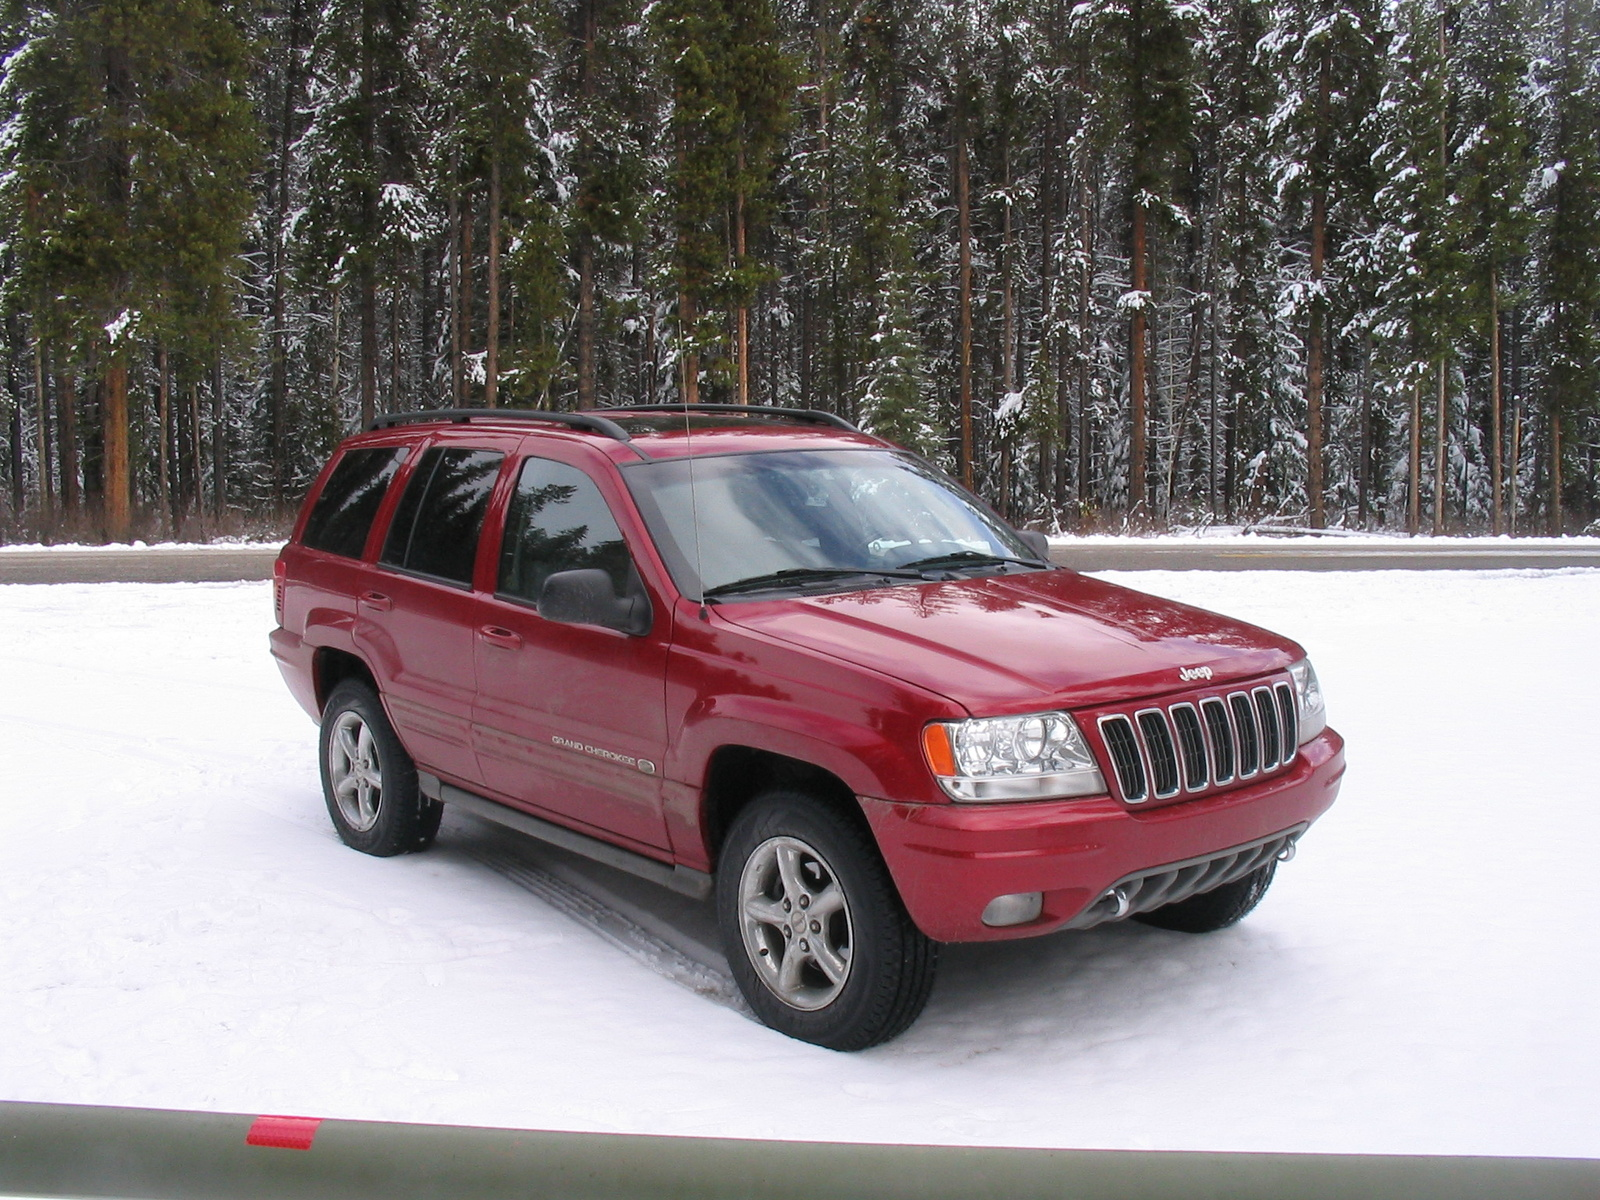 Picture of 2002 Jeep Grand Cherokee Overland